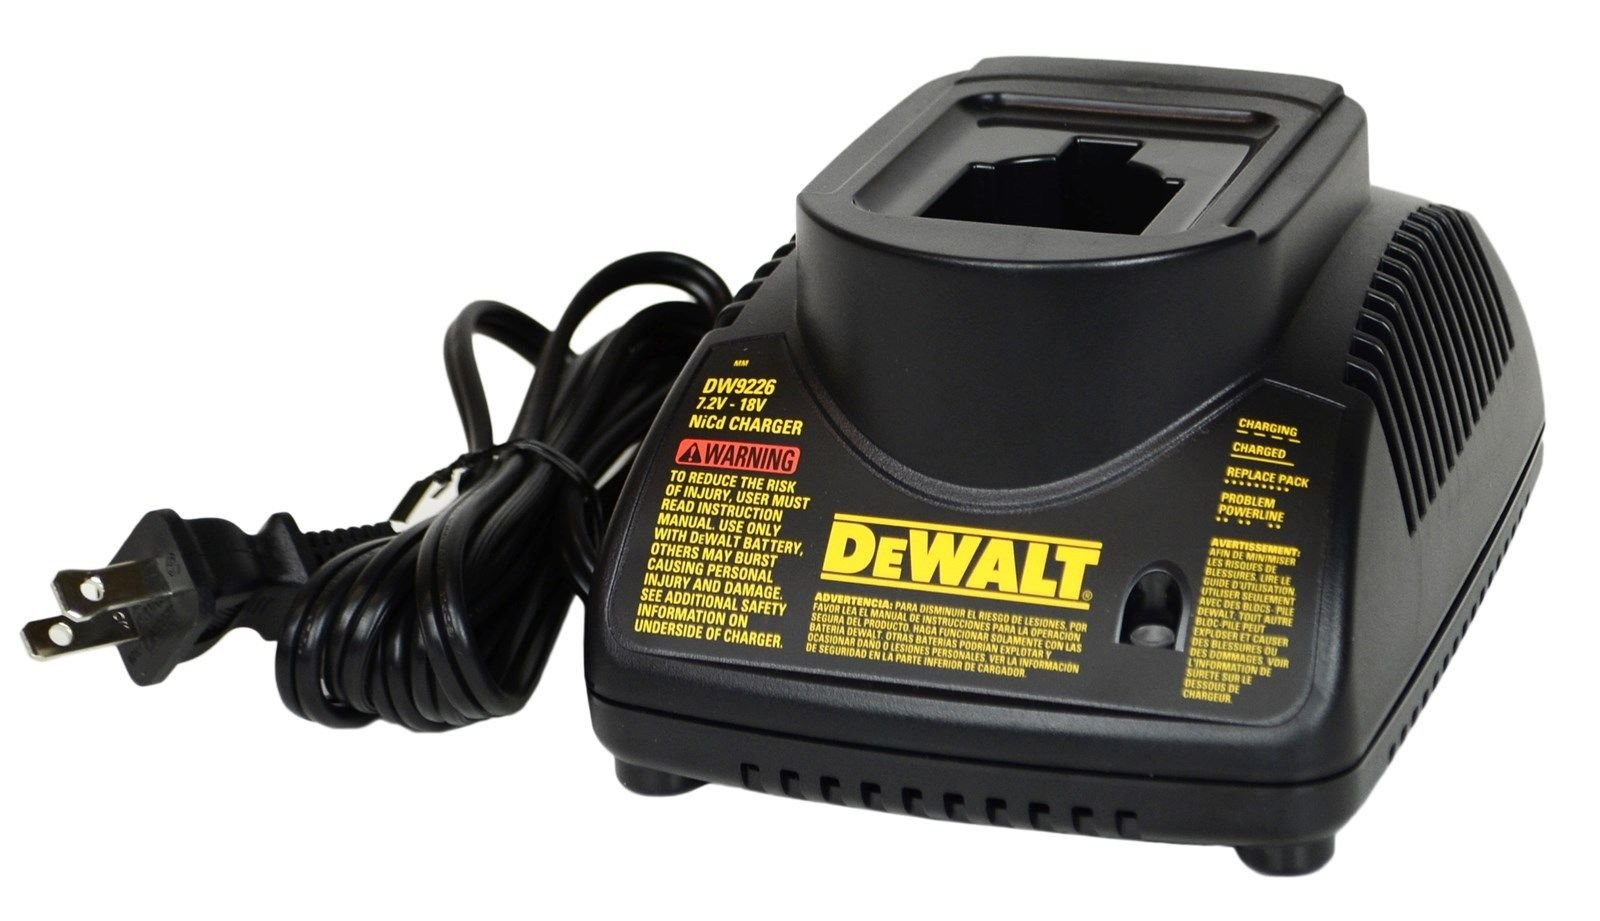 Dewalt DW9226 7.2V - 18V NiCd 1-Hour Battery Charger by DEWALT